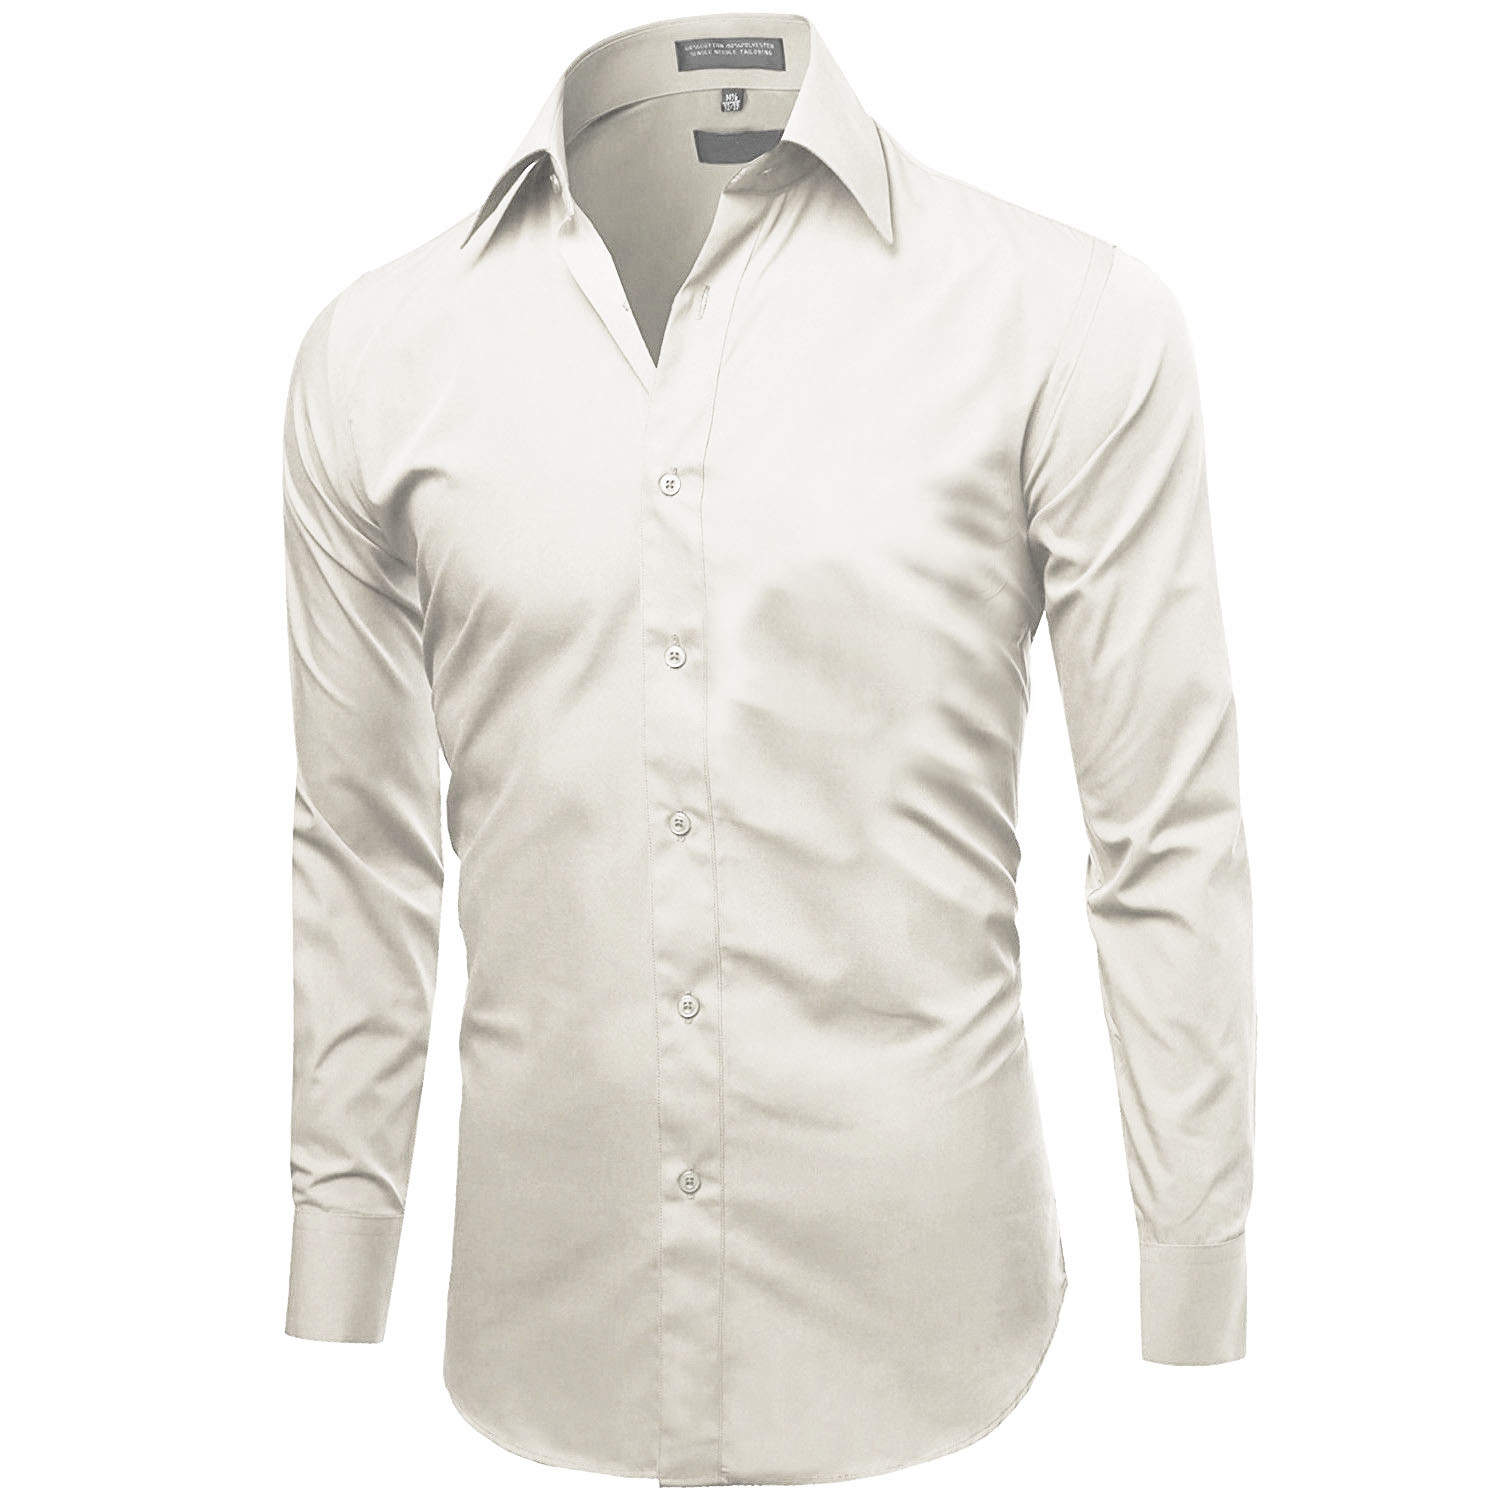 Omega-Italy-Men-039-s-Premium-Slim-Fit-Button-Up-Long-Sleeve-Solid-Color-Dress-Shirt thumbnail 33